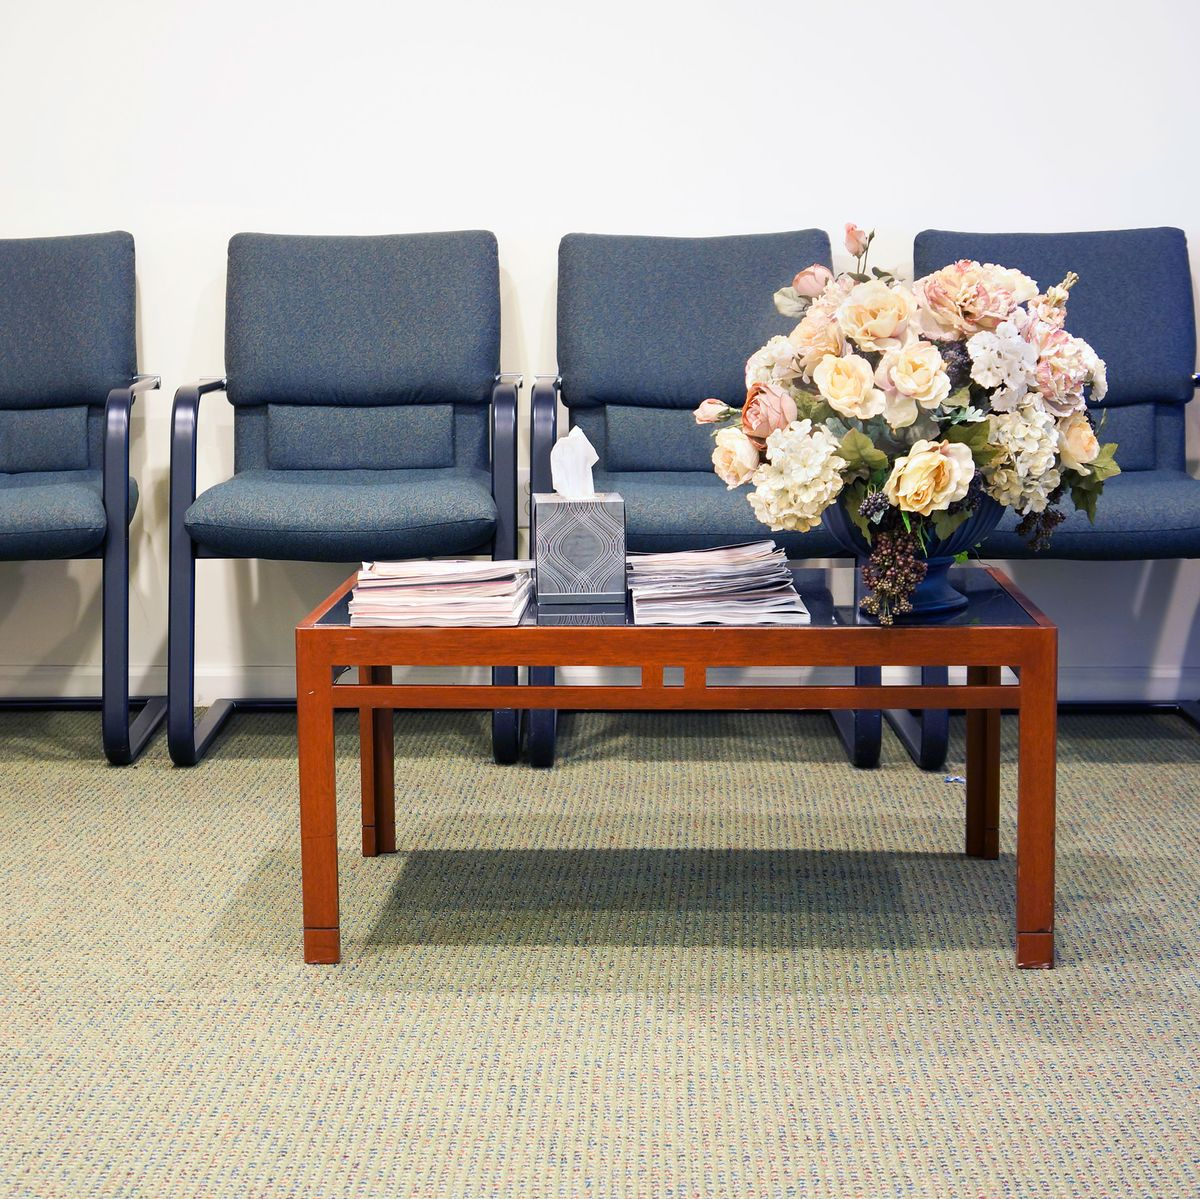 What To Expect At A Fertility Clinic Doctor Appointment